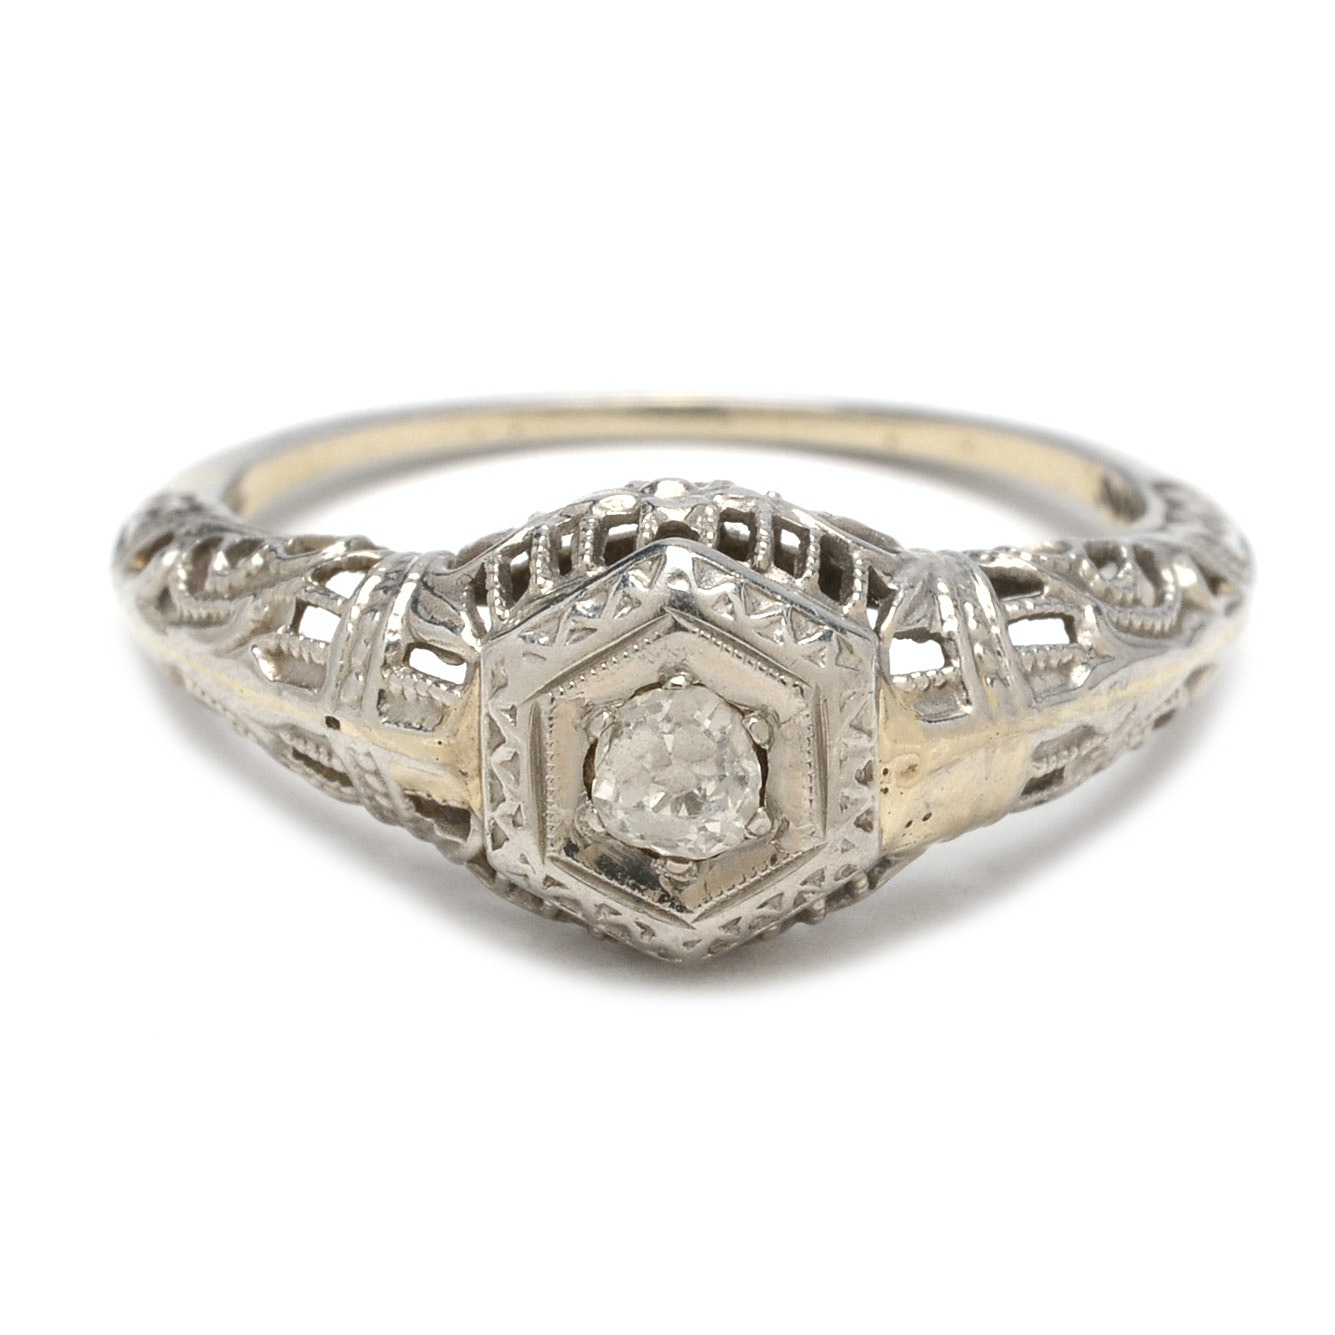 Late Edwardian 18K White Gold European Cut Diamond Ring